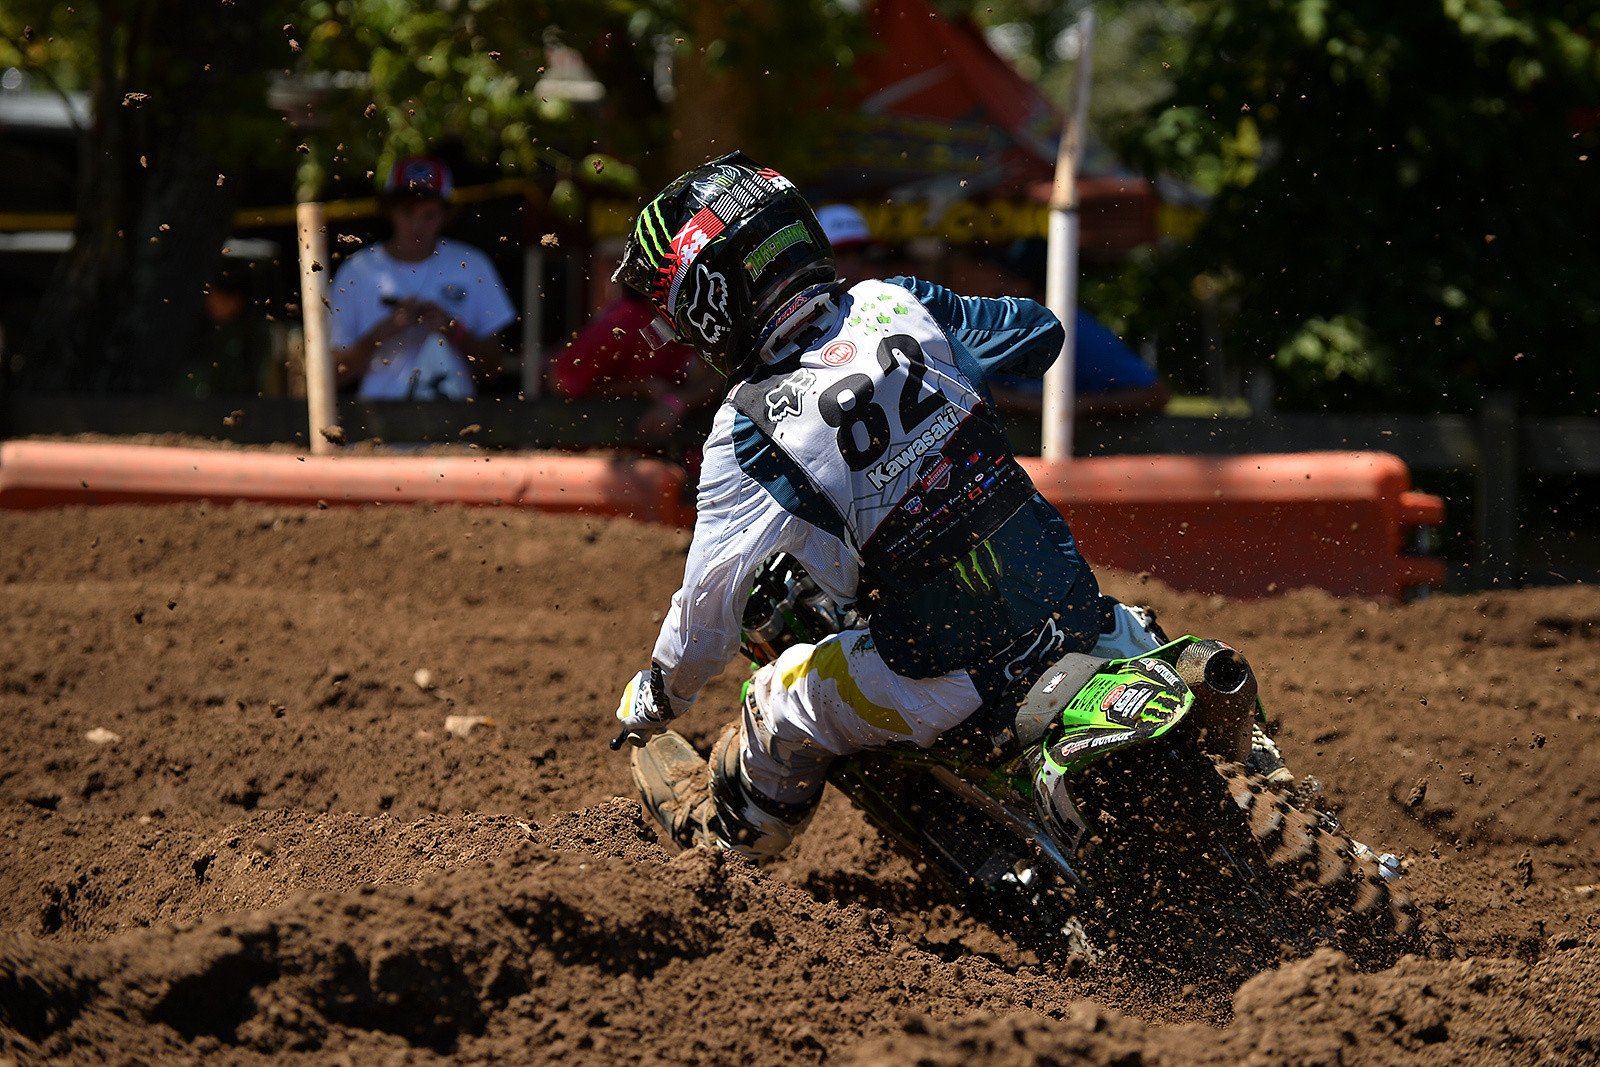 Kawasaki Team Green's Garrett Marchbanks was a force to be reckoned with all week long at Loretta Lynn's.